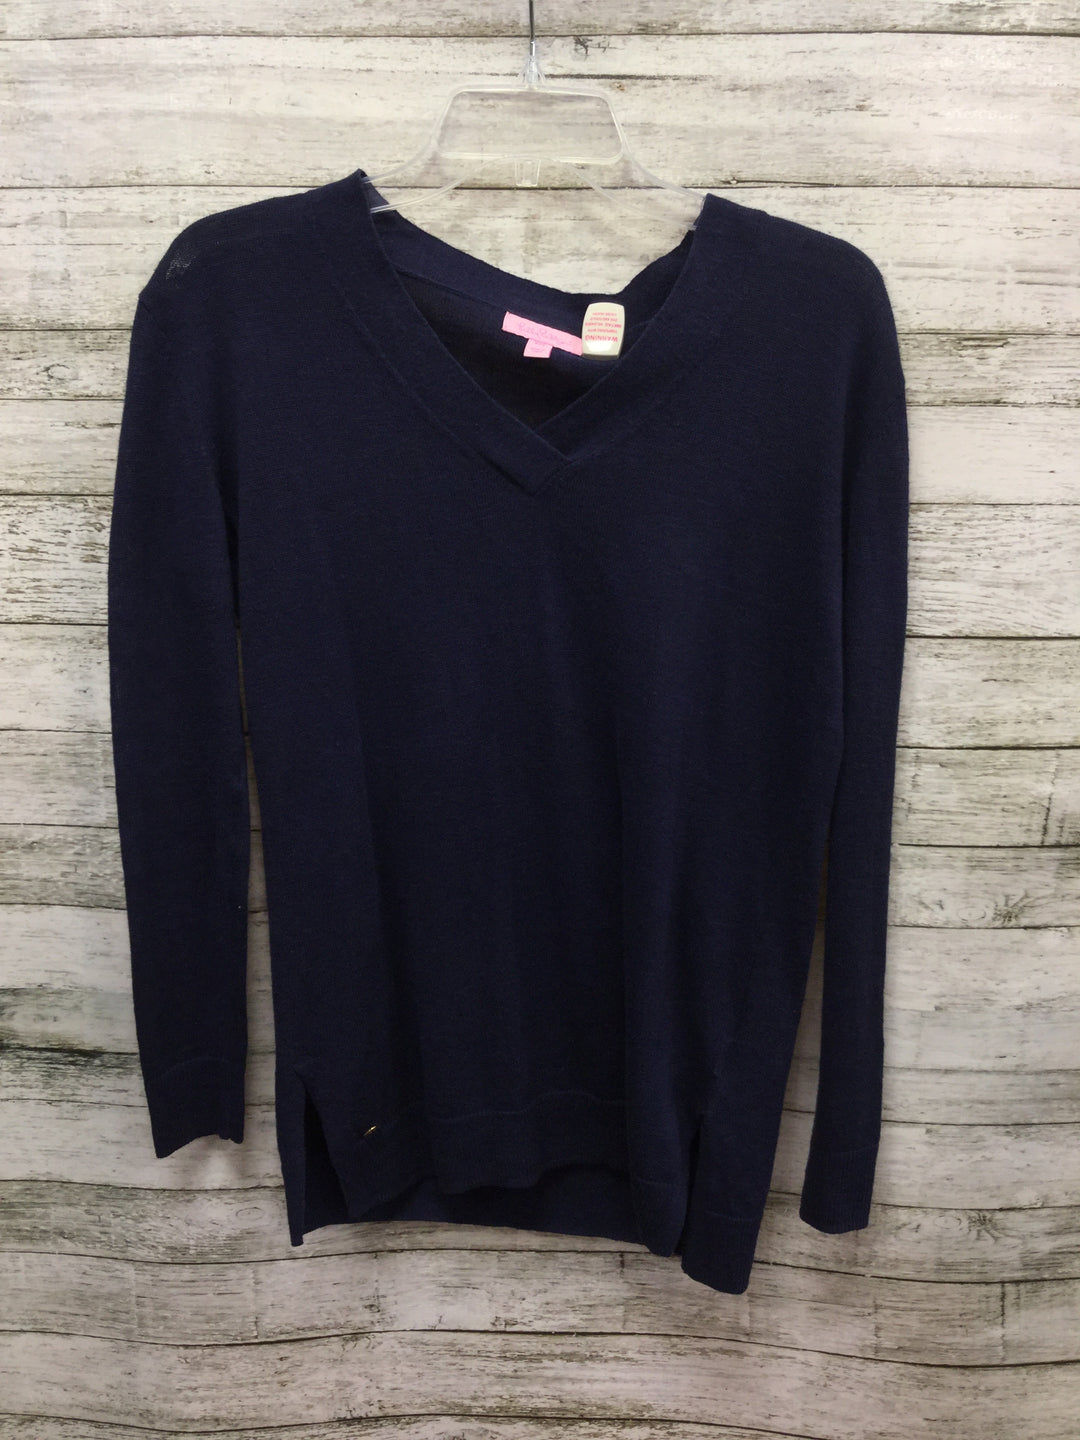 Primary Photo - BRAND: LILLY PULITZER , STYLE: SWEATER LIGHTWEIGHT , COLOR: NAVY , SIZE: XXS , SKU: 127-2767-92336, , NAVY BLUE V-NECK LILLY PULITZER SWEATER! MADE FROM 55% COTTON AND 45% LINEN.